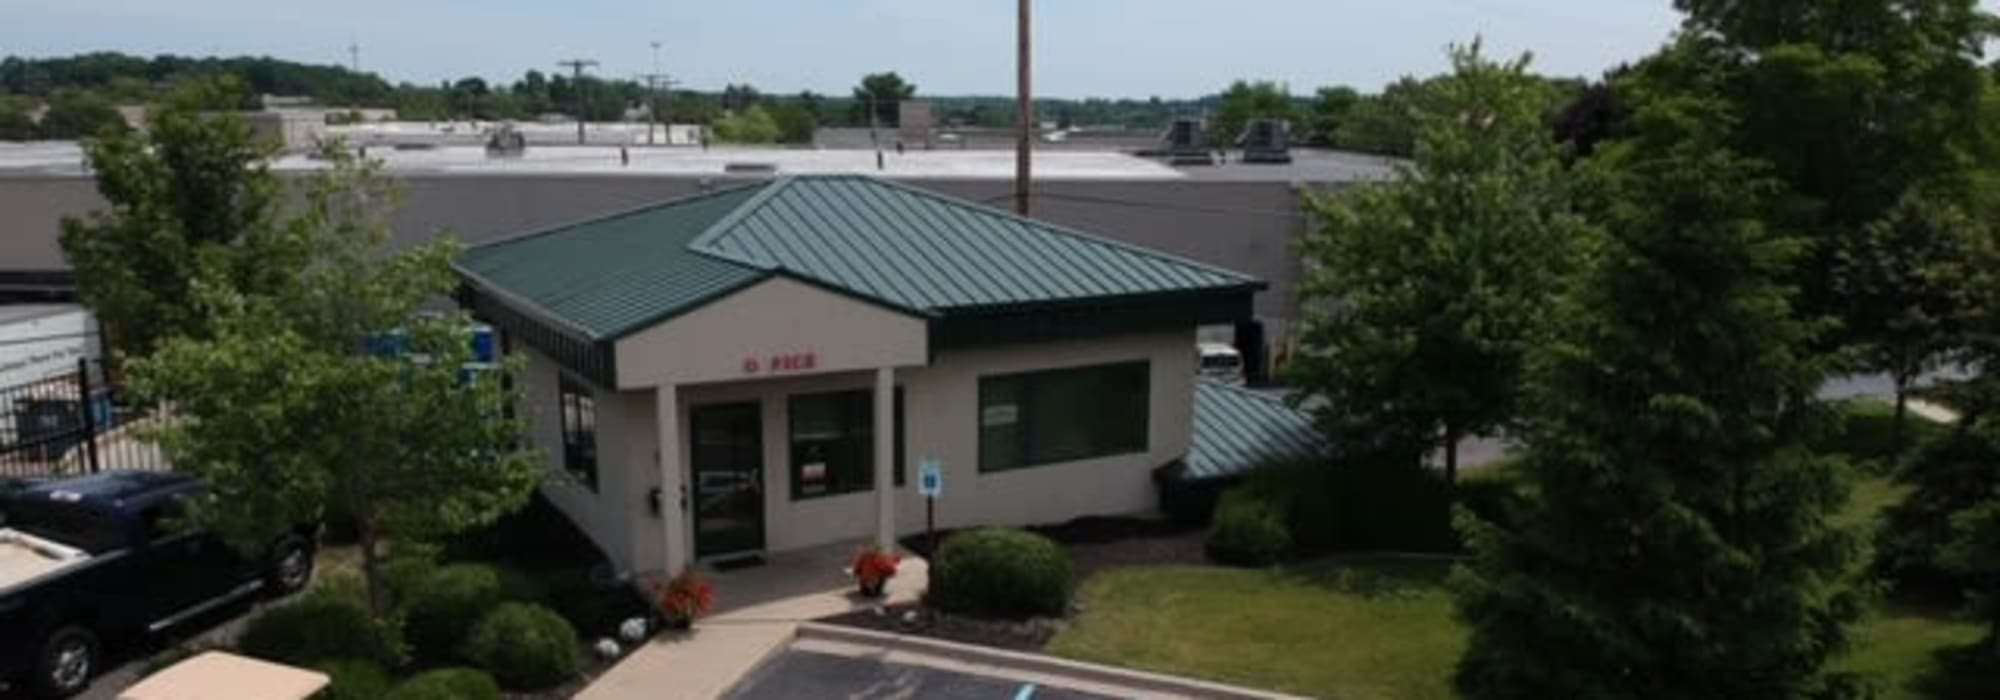 An aerial view of the leasing office at Michigan Storage Centers in Farmington Hills, Michigan